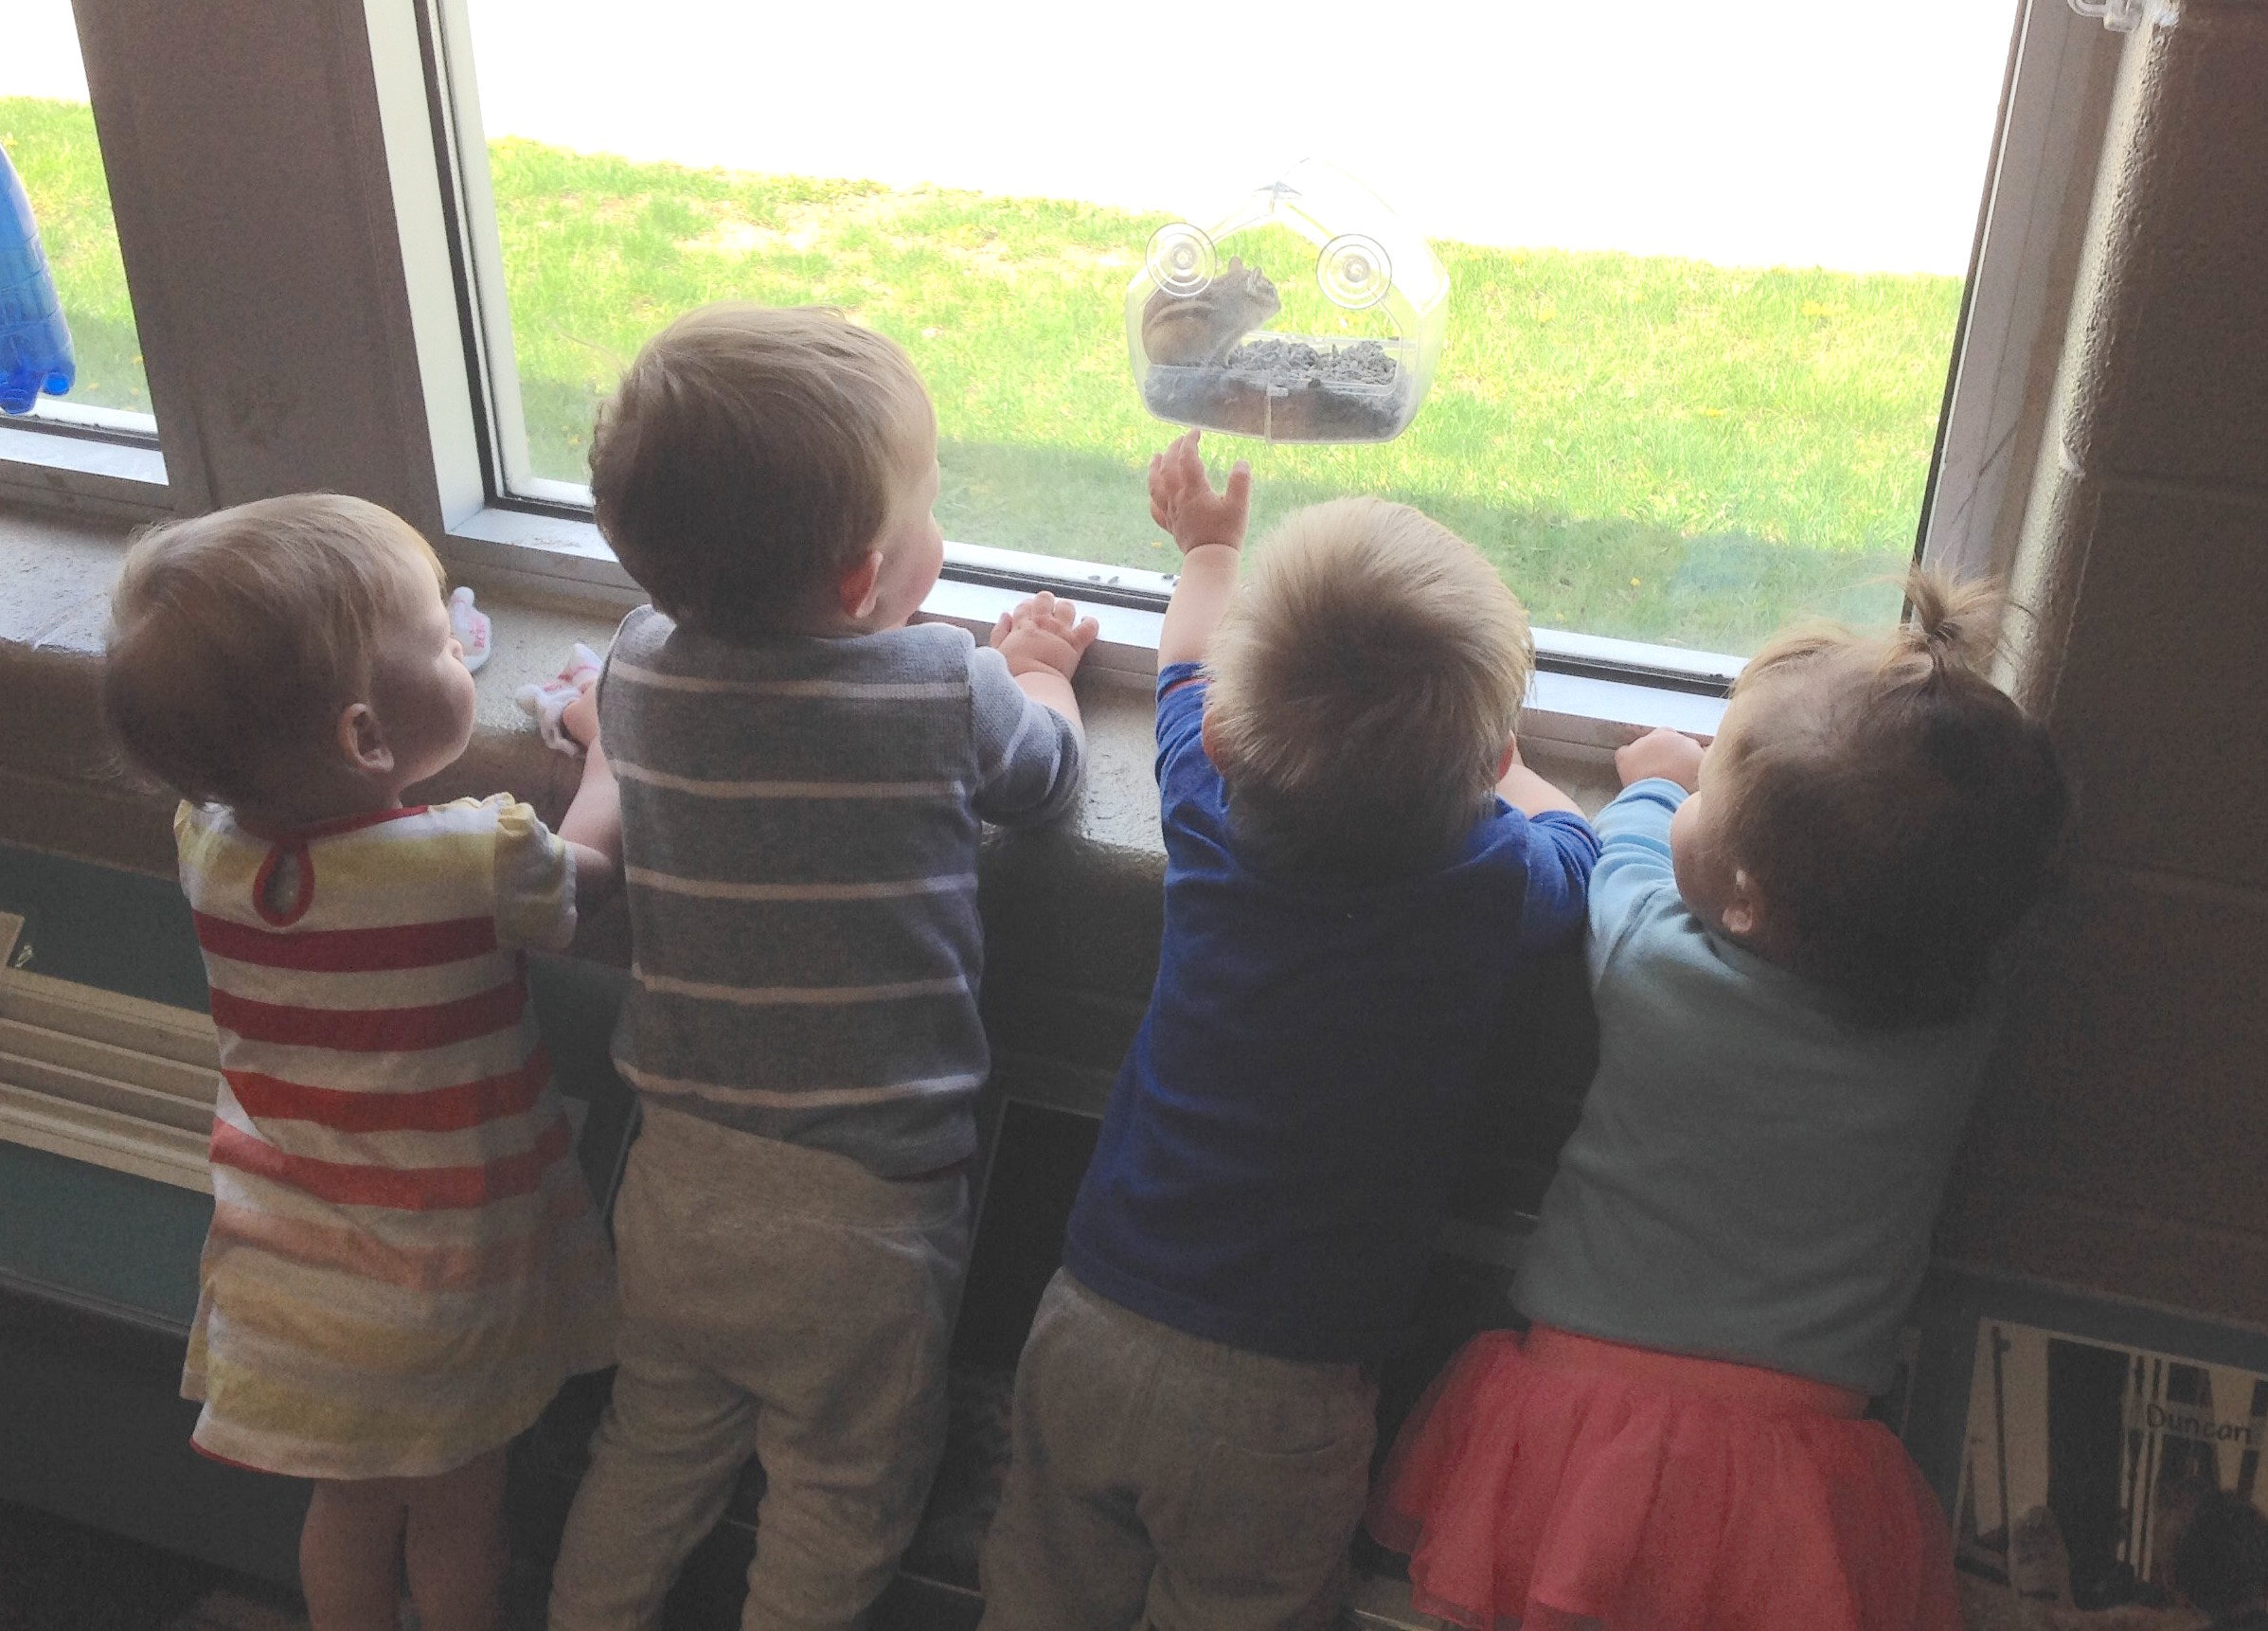 infants looking out of window at a chipmunk